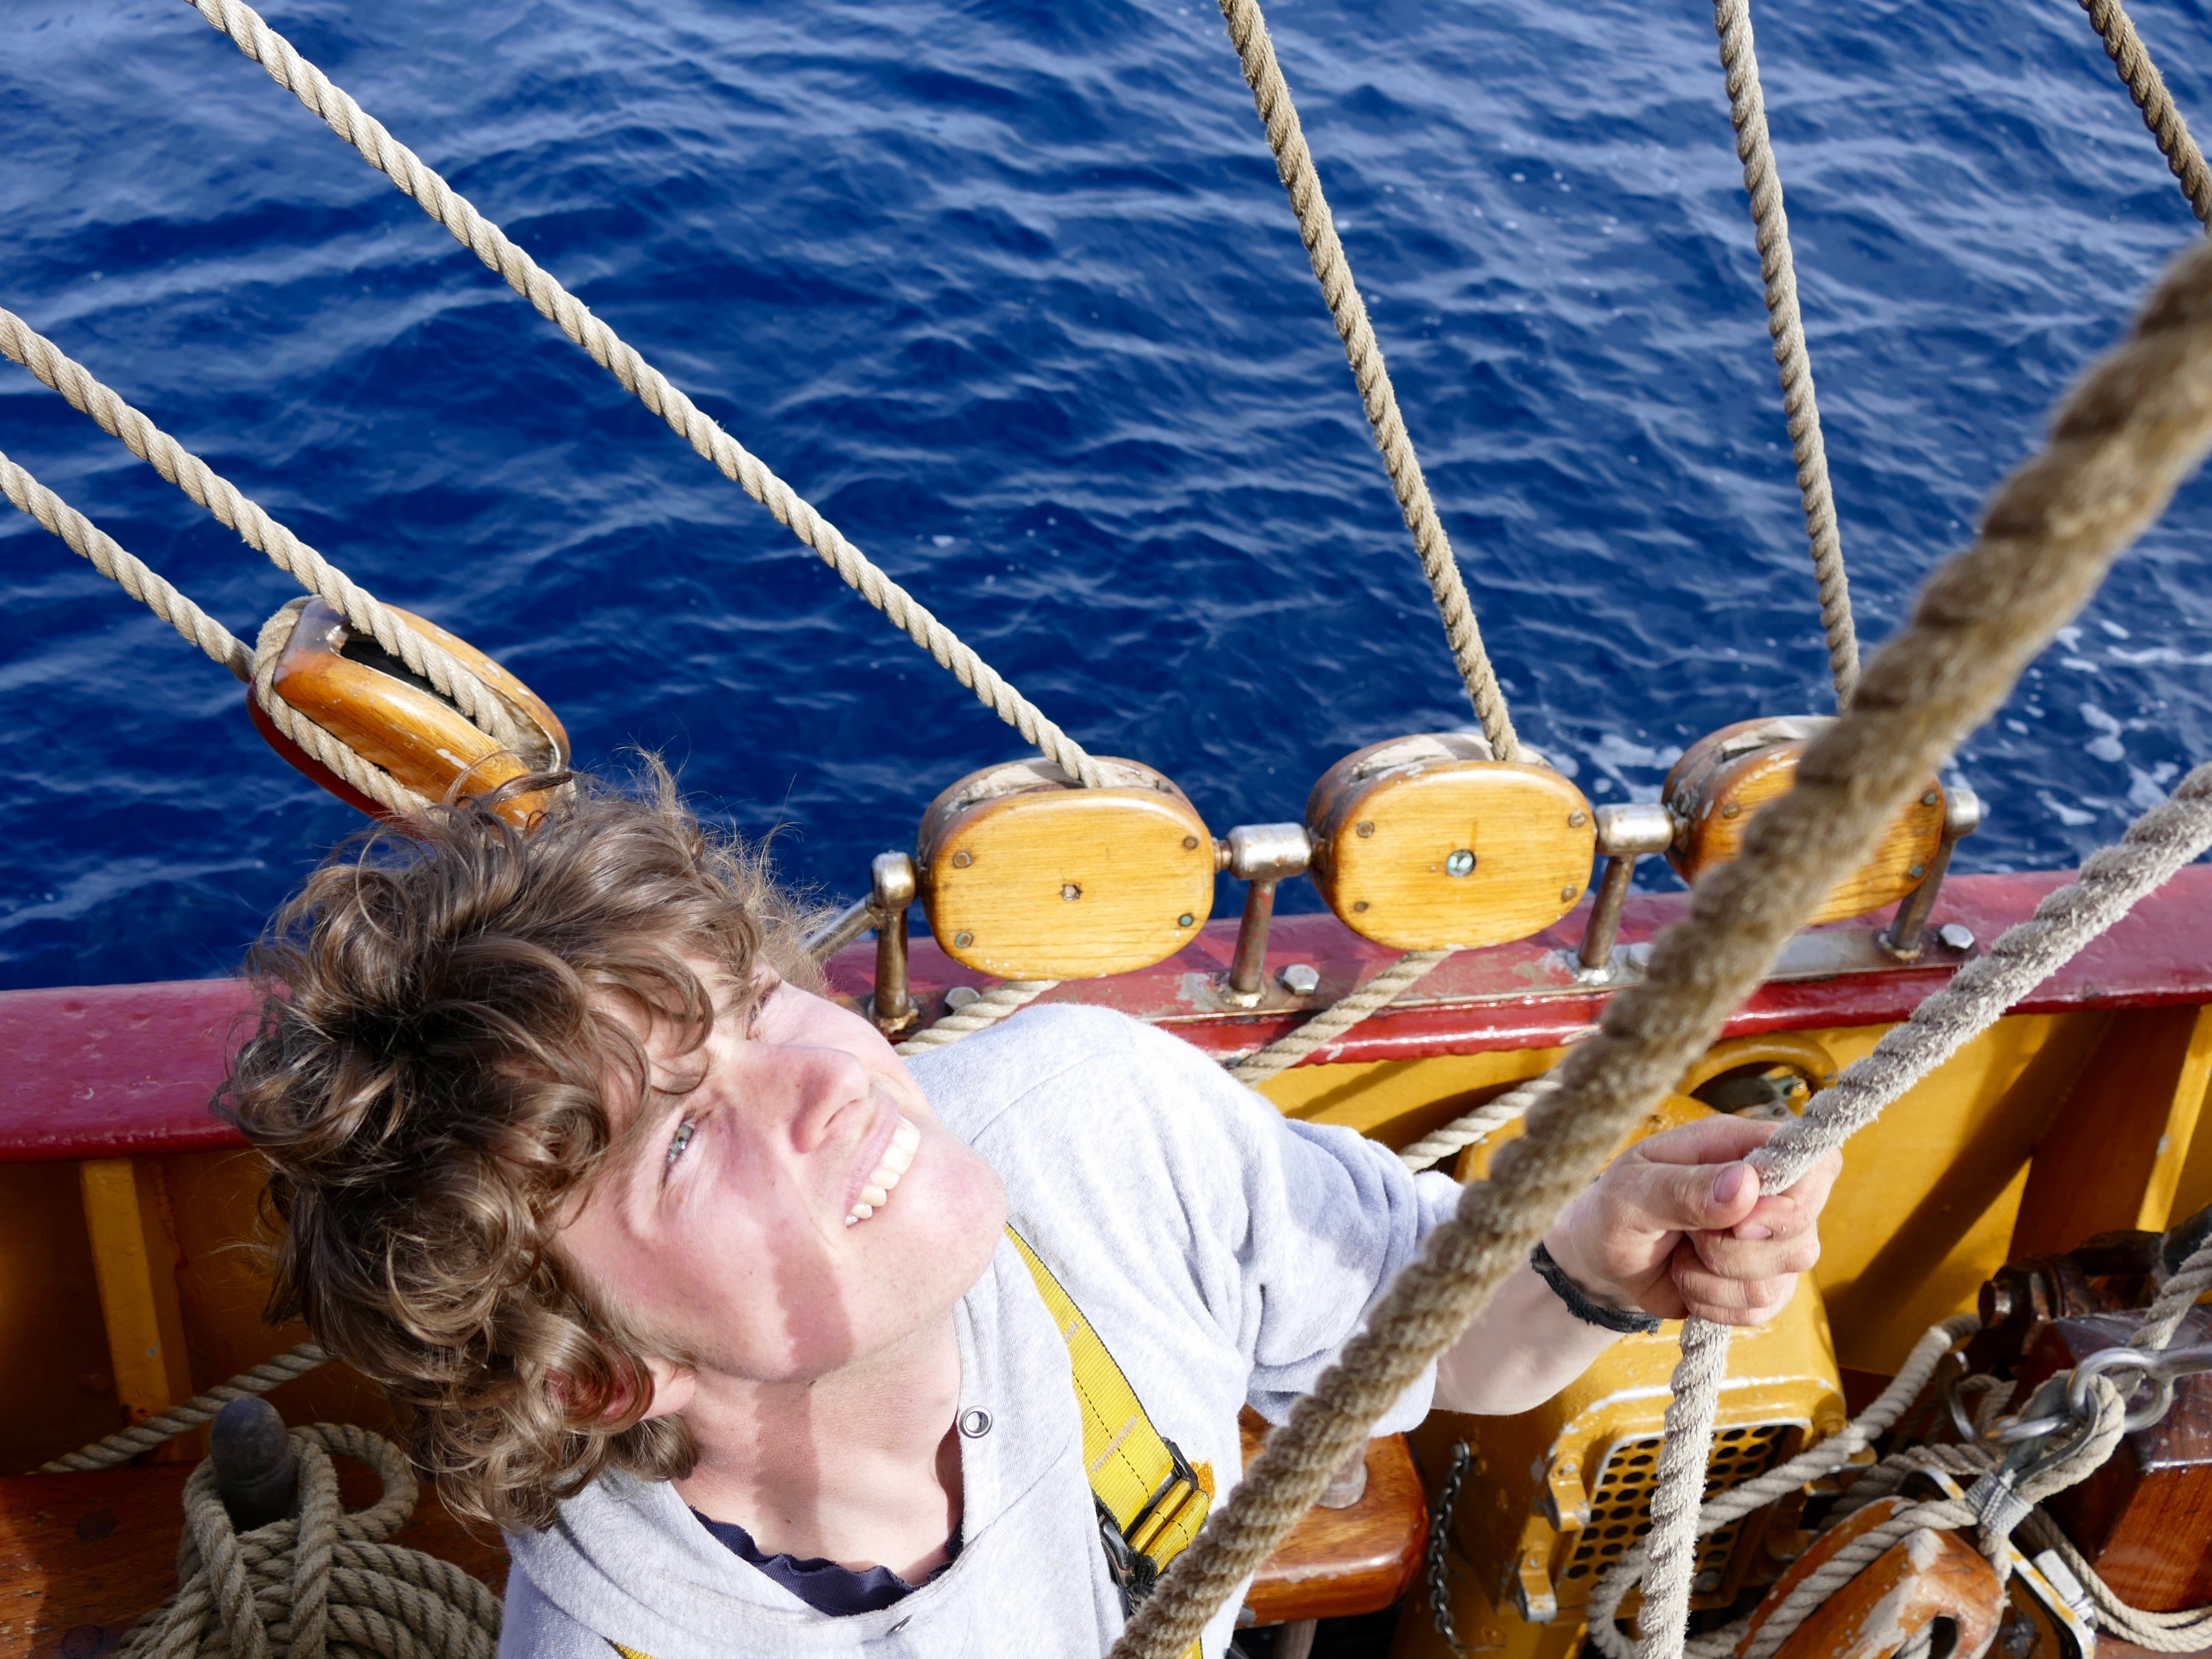 Leaving land and on our own: Matt looking up at lines in the South Atlantic